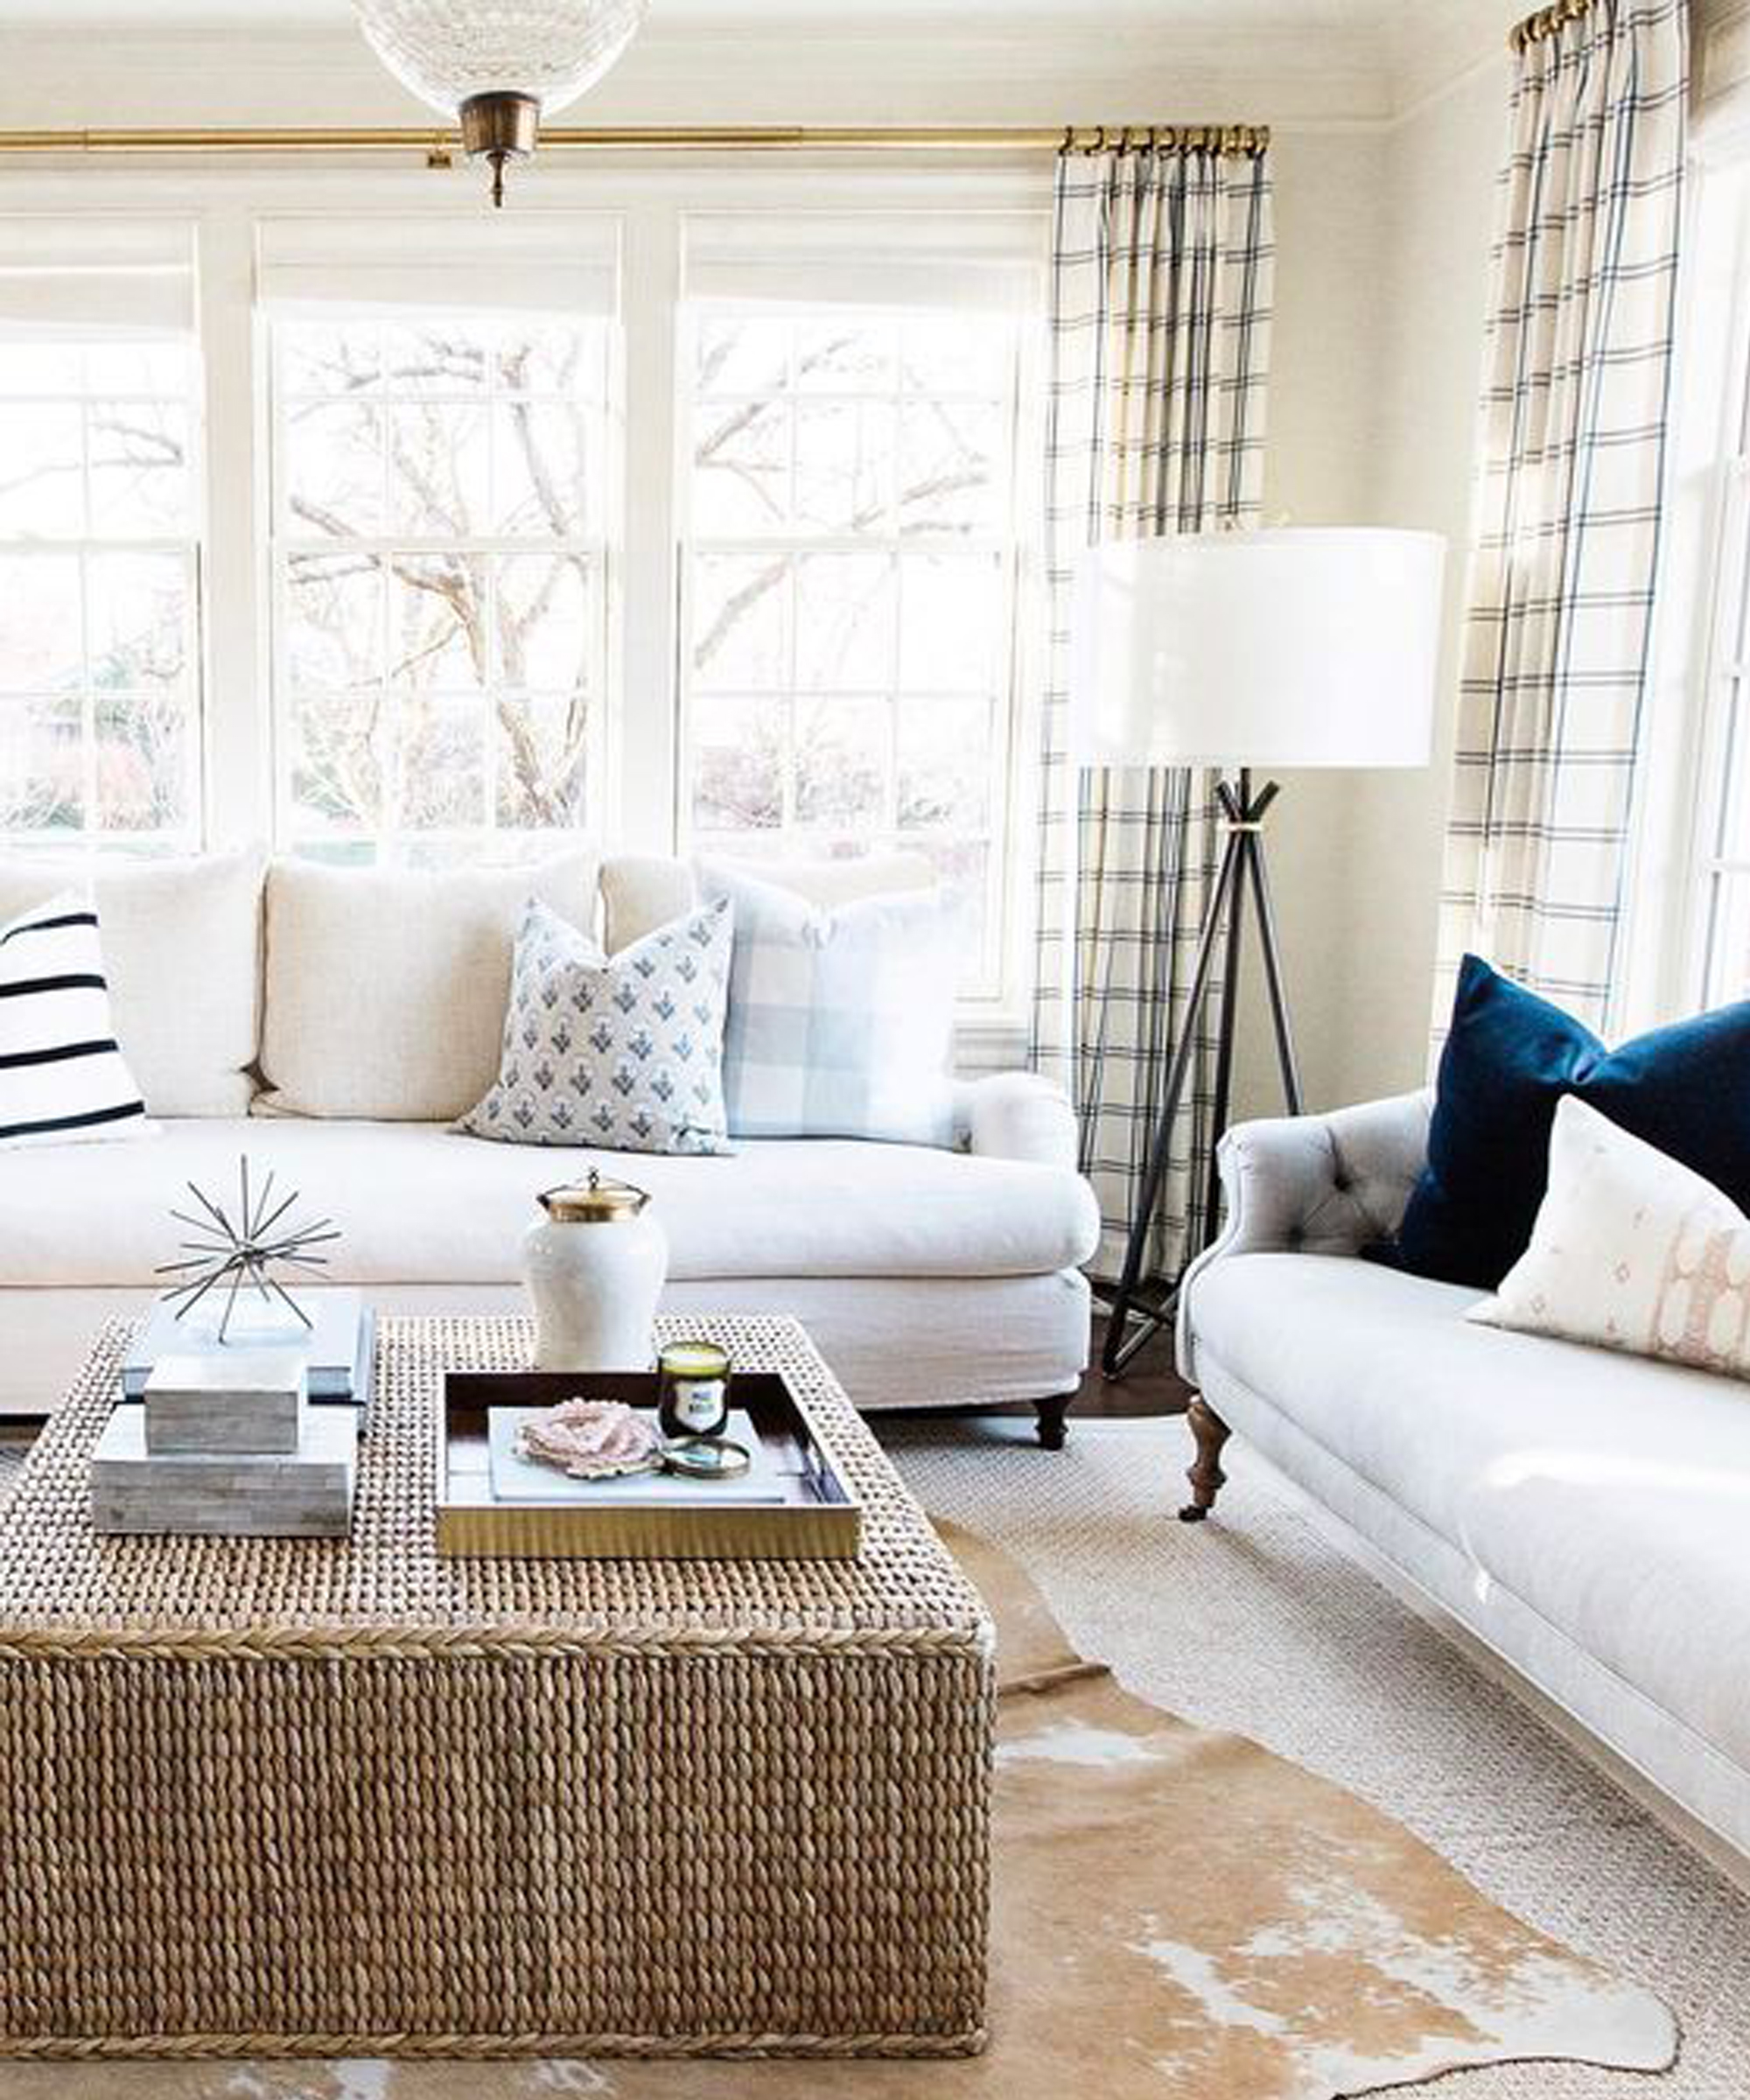 8 Chic Ideas To Transform Your Living Room - Hyman Interiors